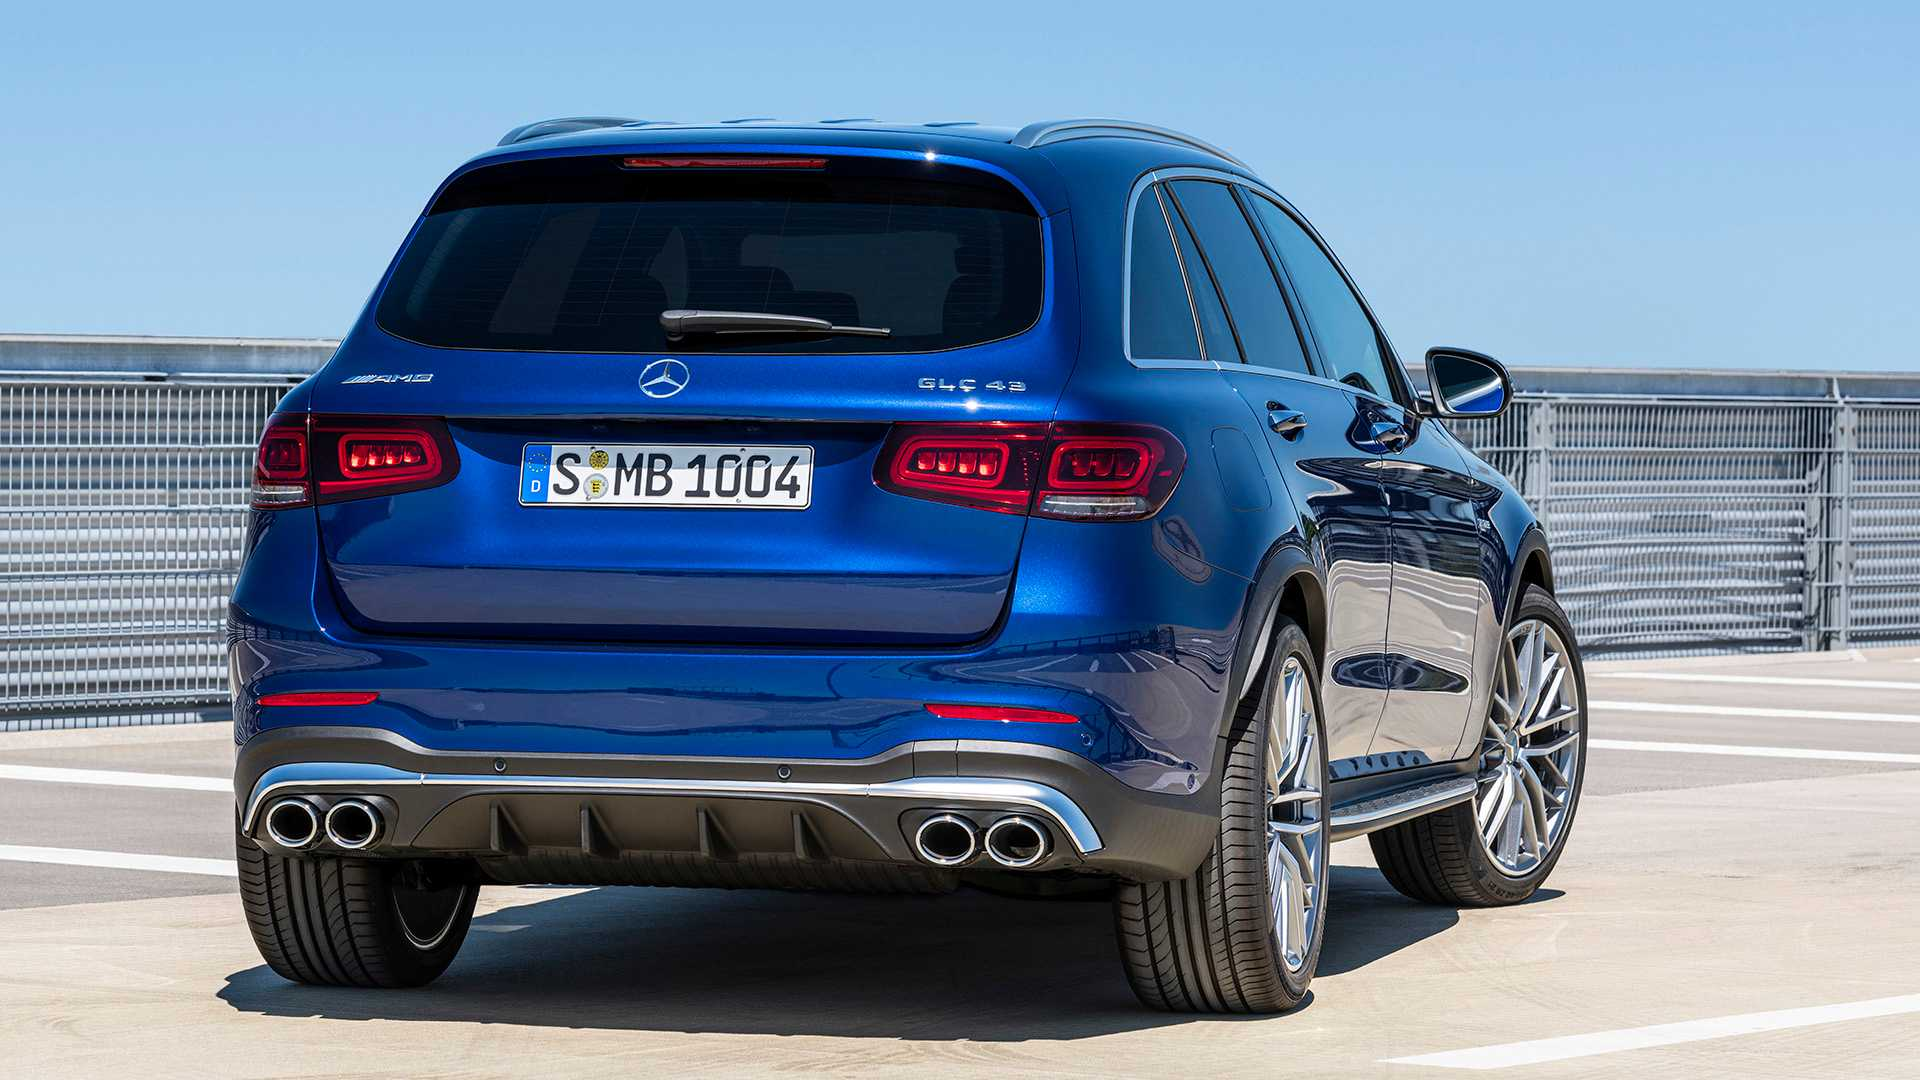 2020 Mercedes-AMG GLC 43 4MATIC Rear Wallpapers (9)